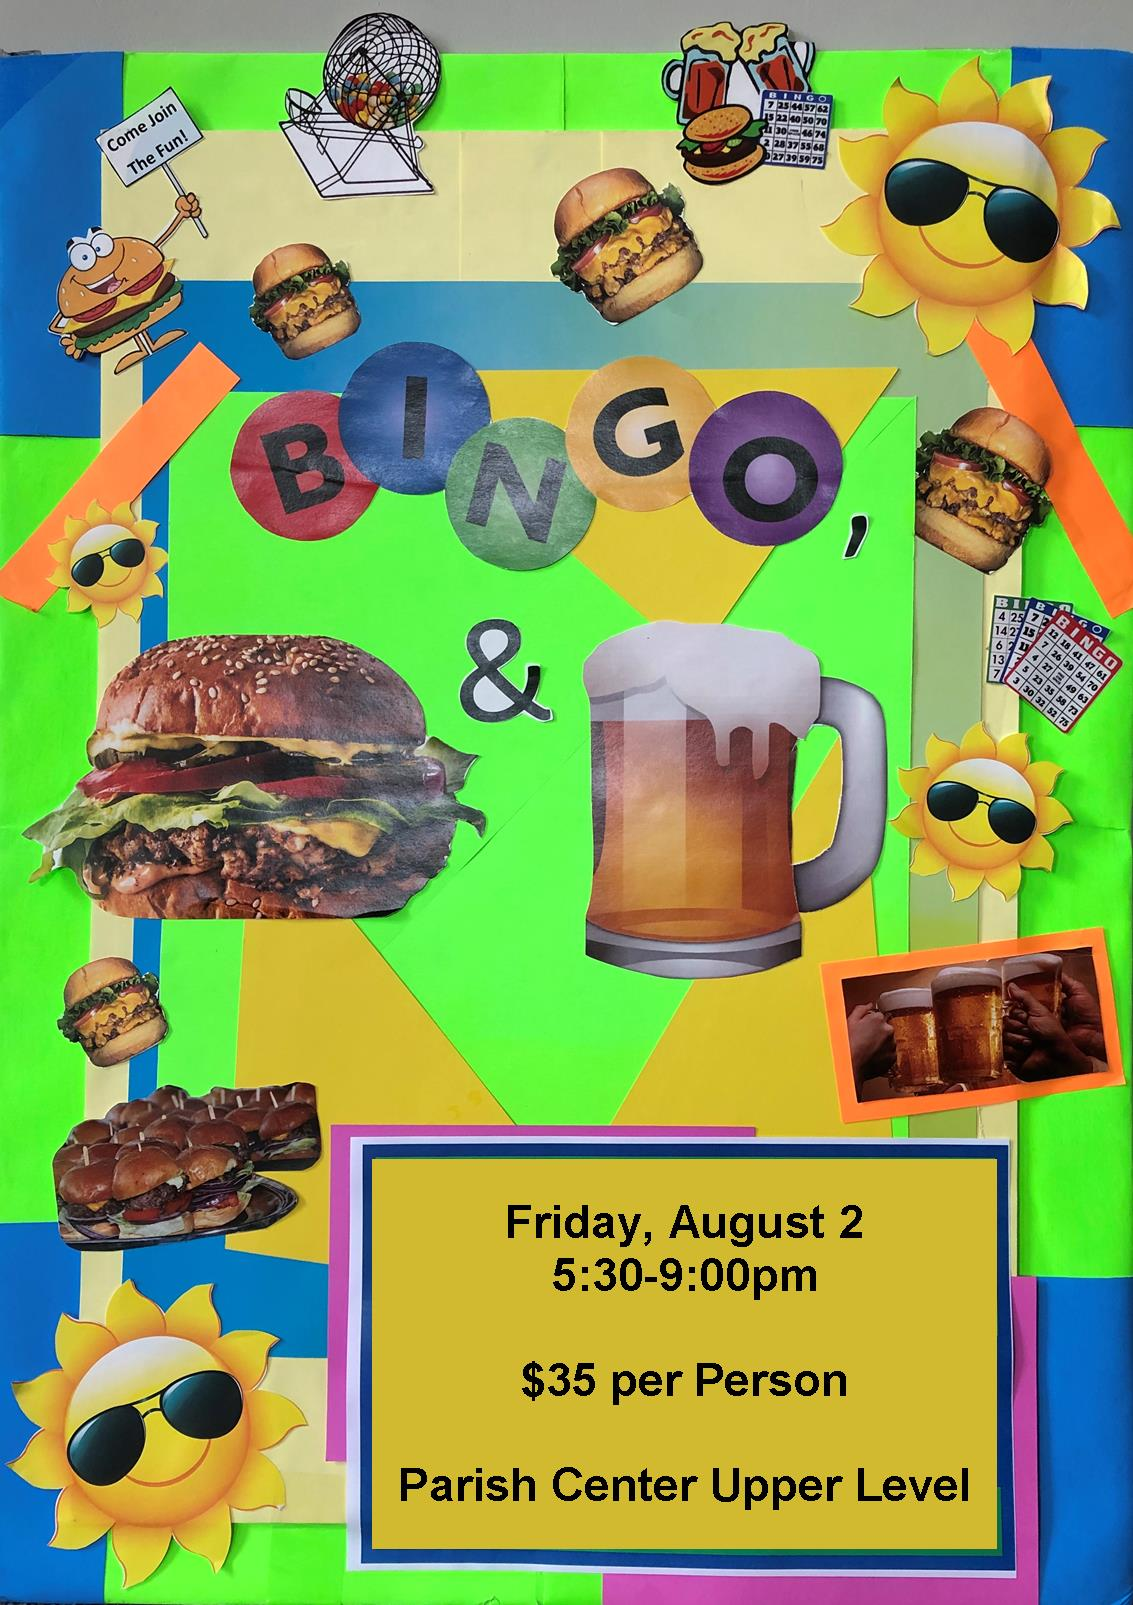 Bingo, Burgers, and Beer!